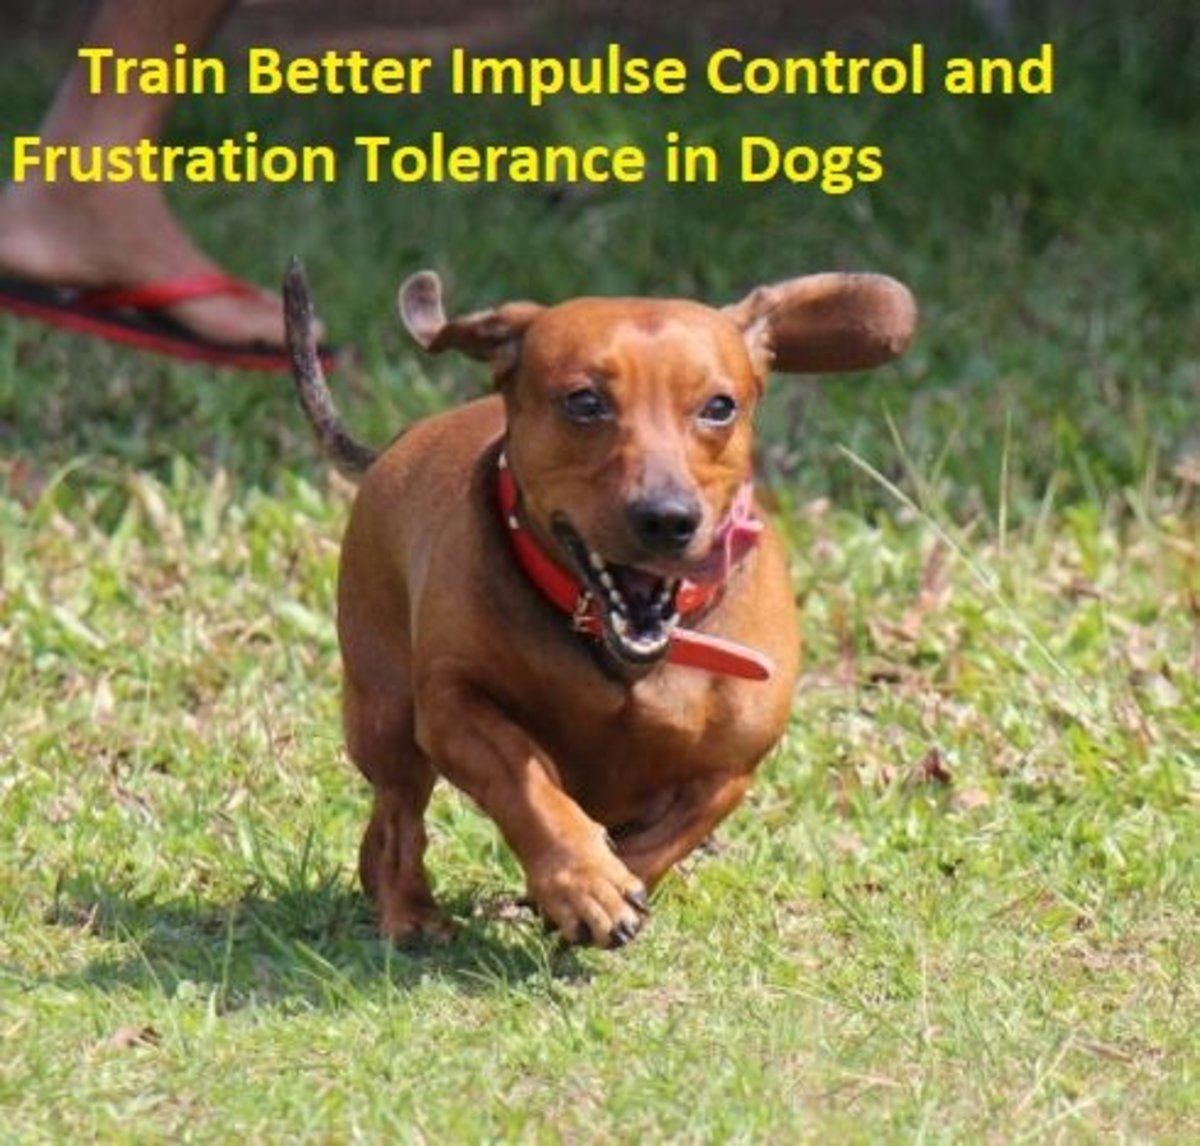 8 Exercises for Training a Dog's Impulse Control and Frustration Tolerance